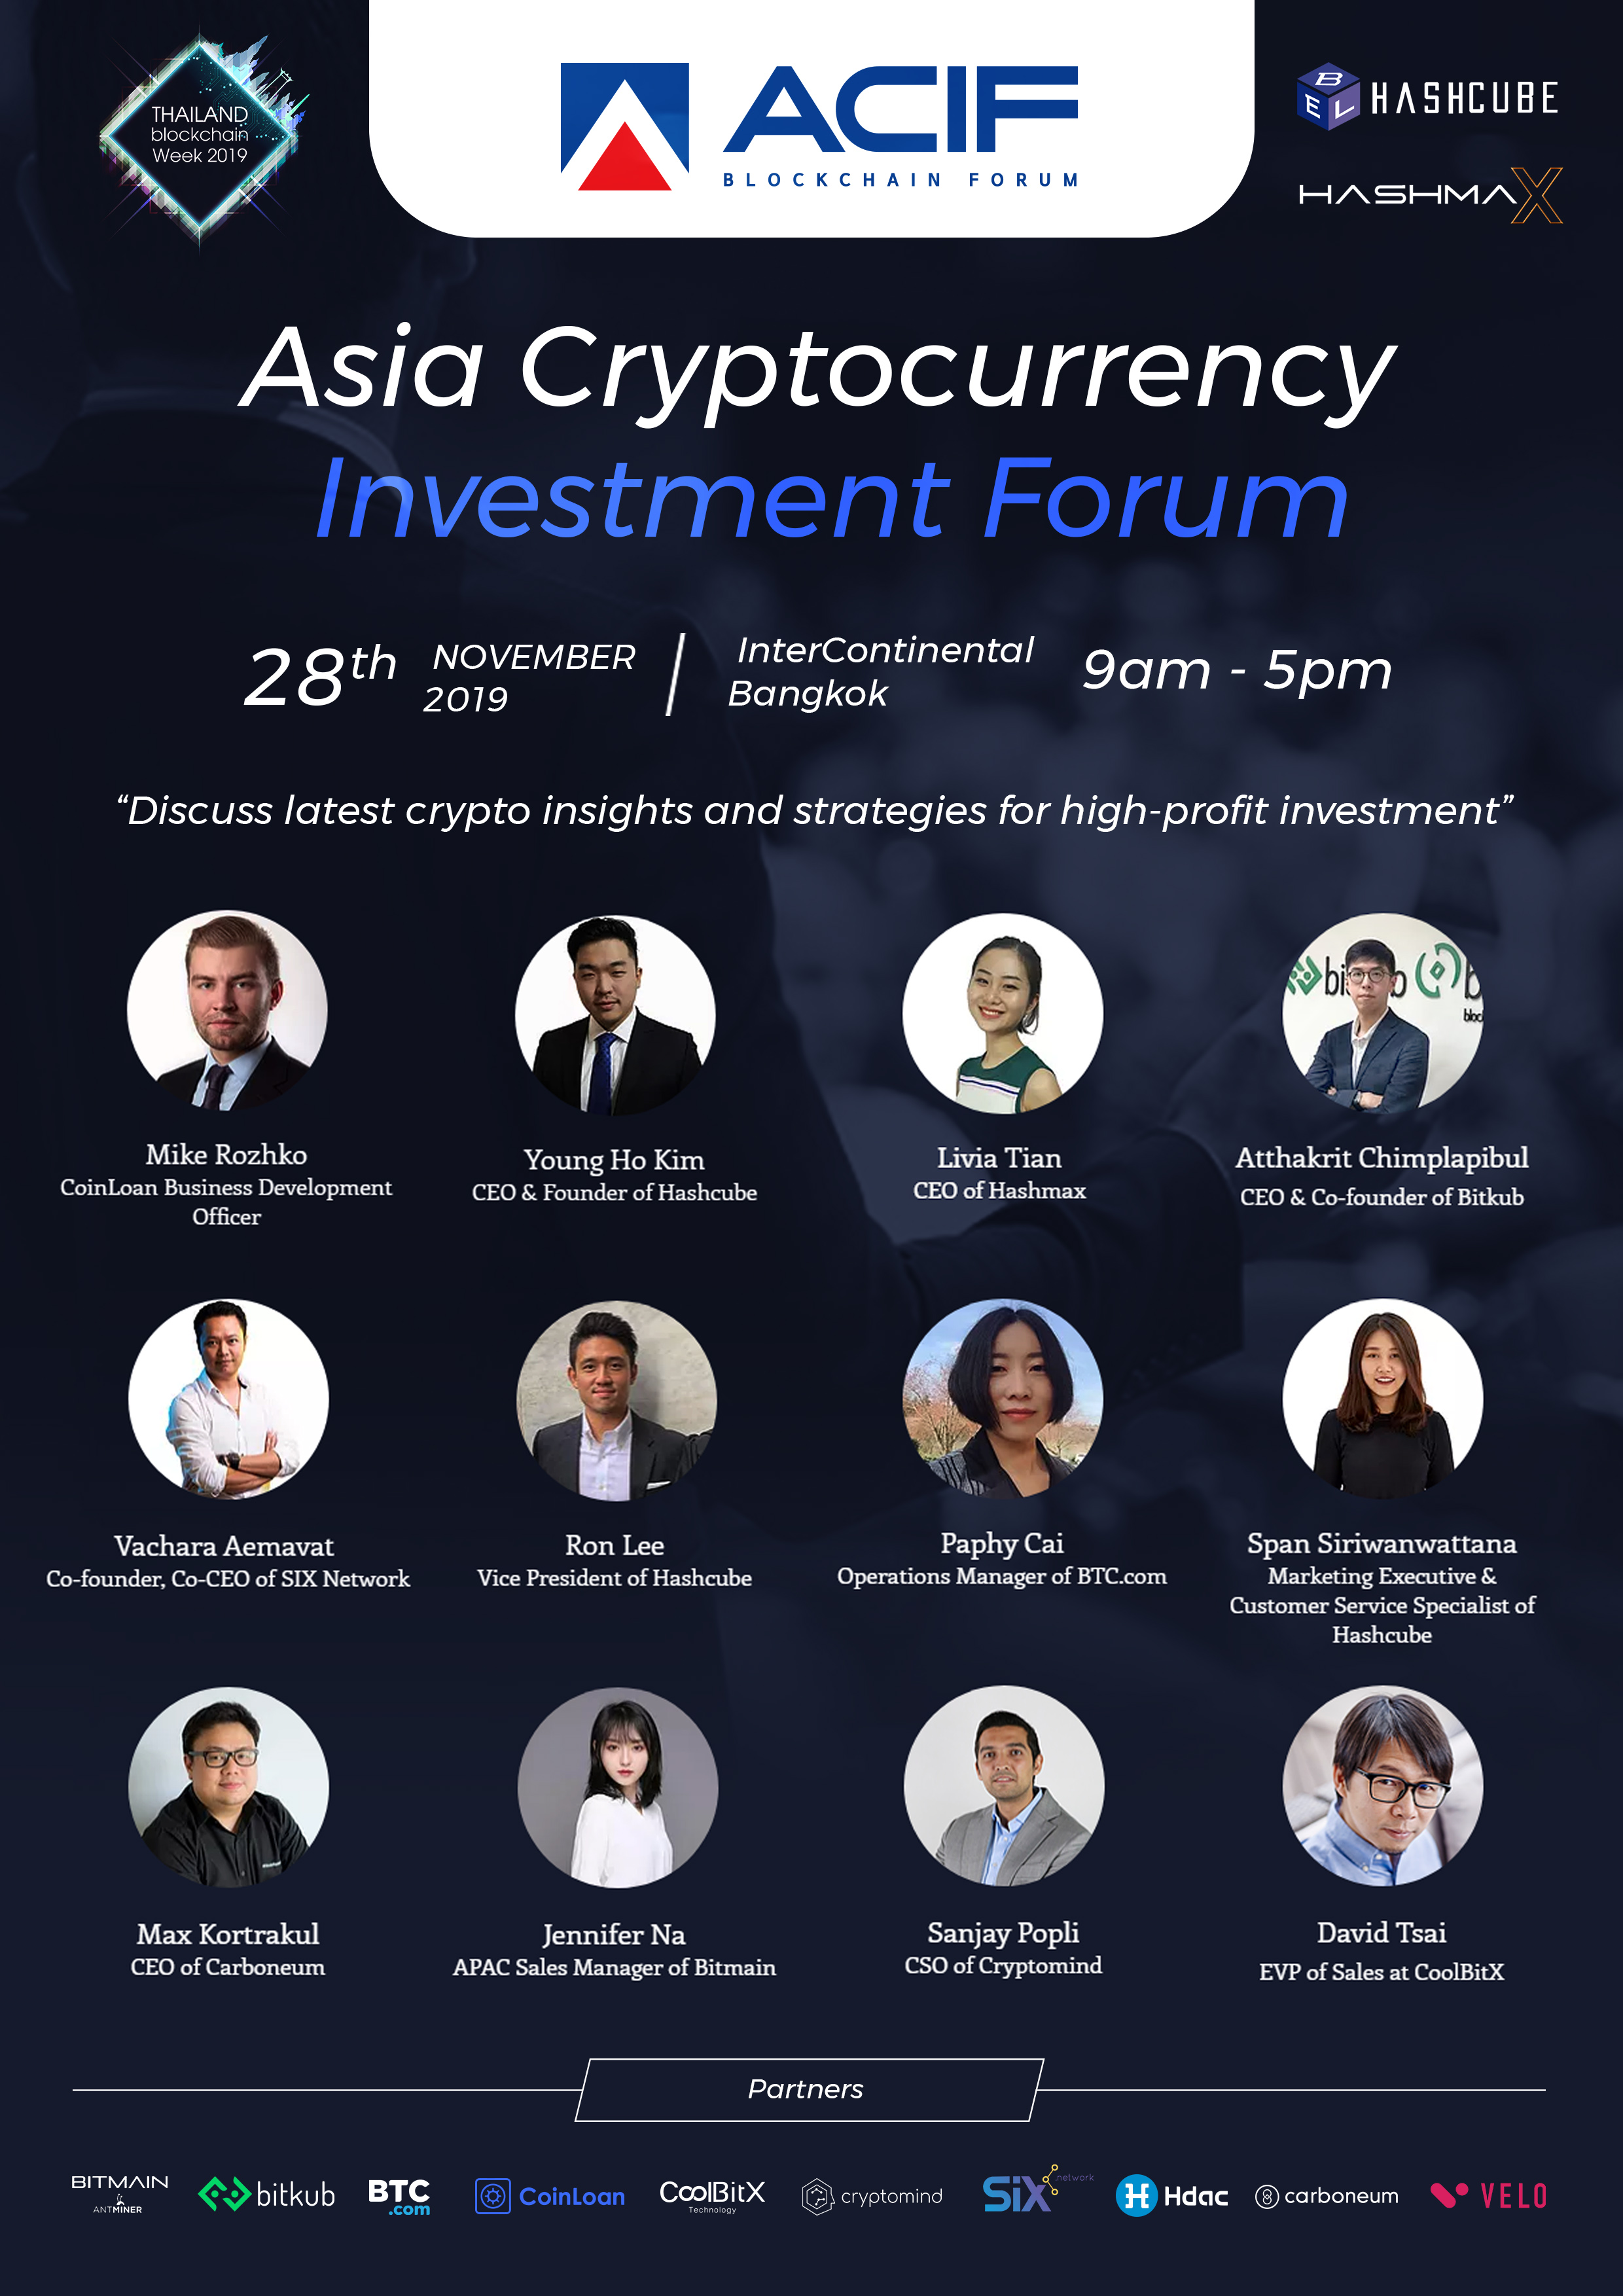 Don't Ever Miss Asia Crypto Investment Forum - A Regional Digital Event in Thailand on November 28th